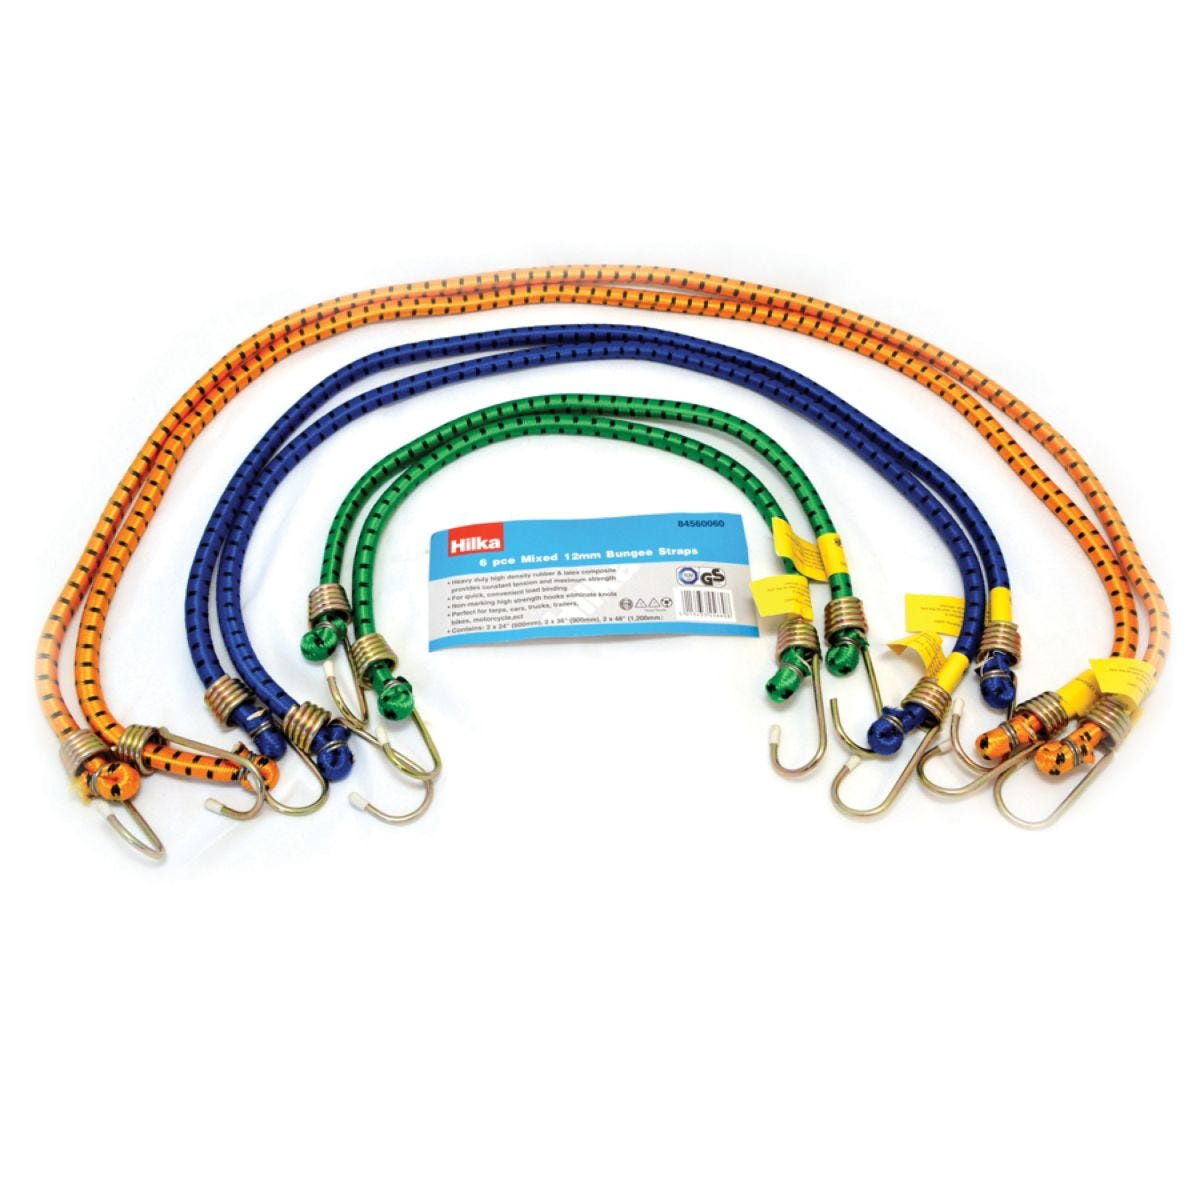 Hilka Mixed Bungee Straps - 6pc